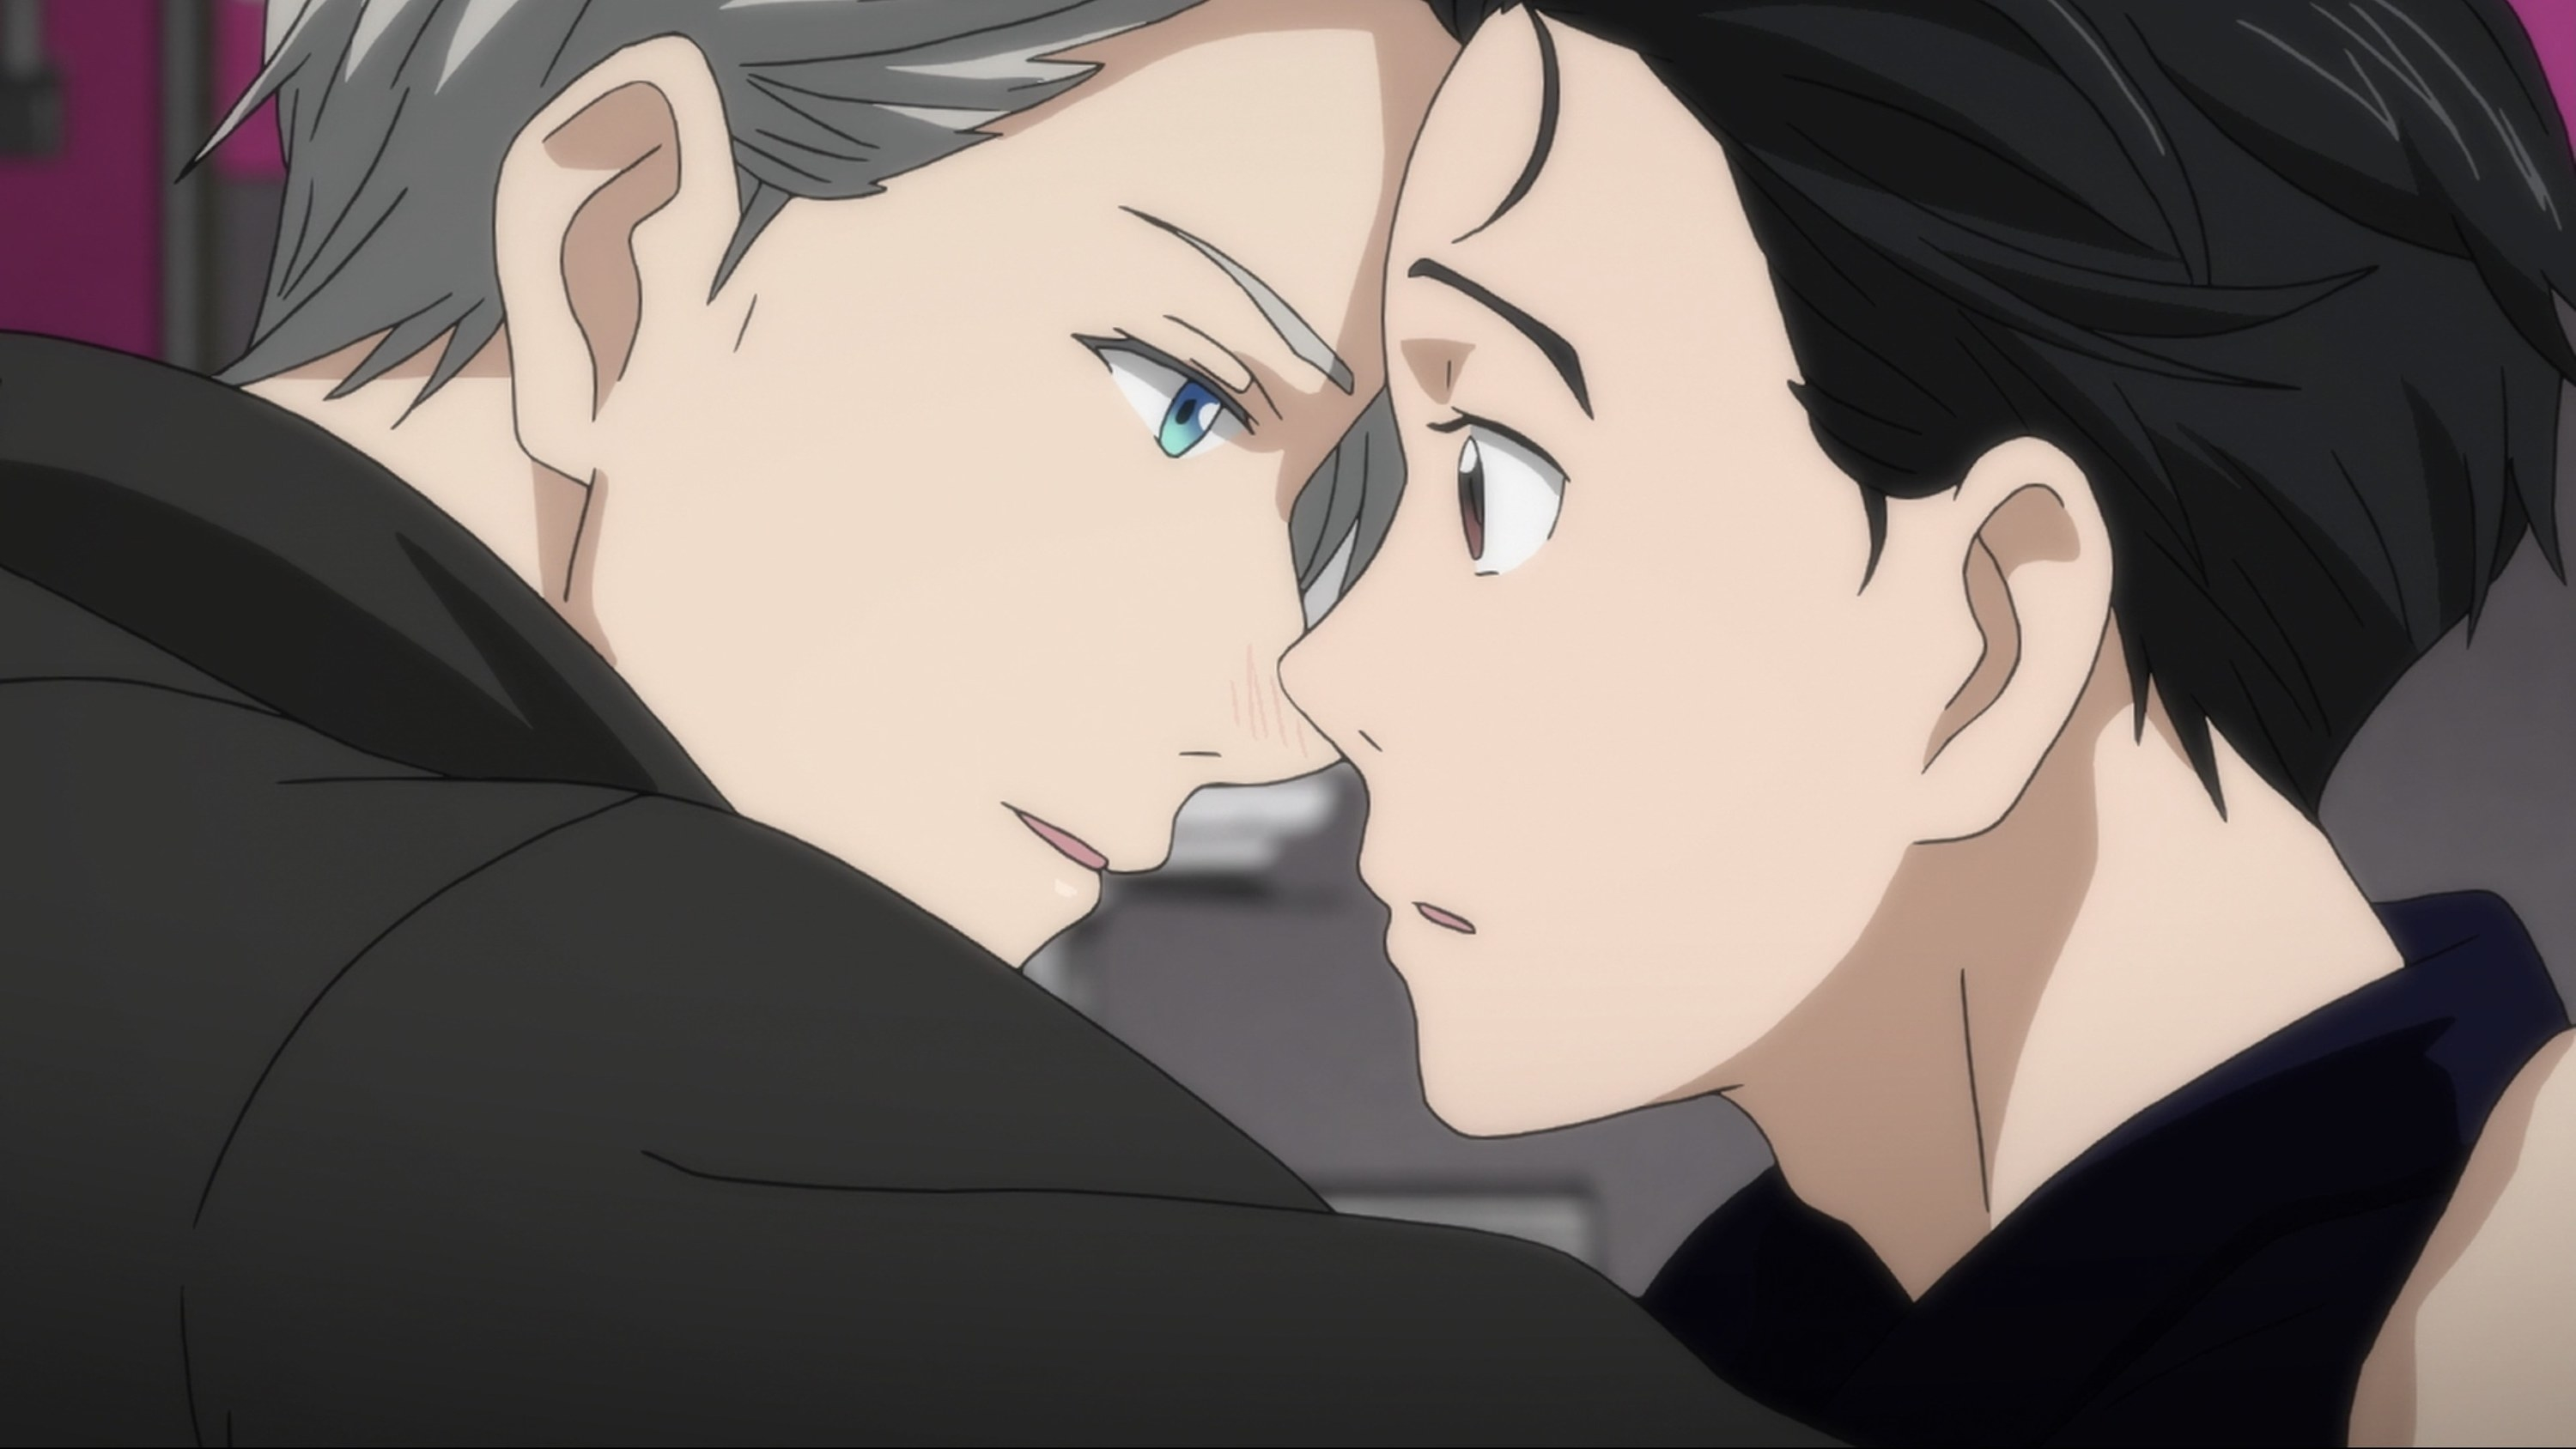 Victor and Yuri looking into each other's eyes almost as if they were about to kiss.